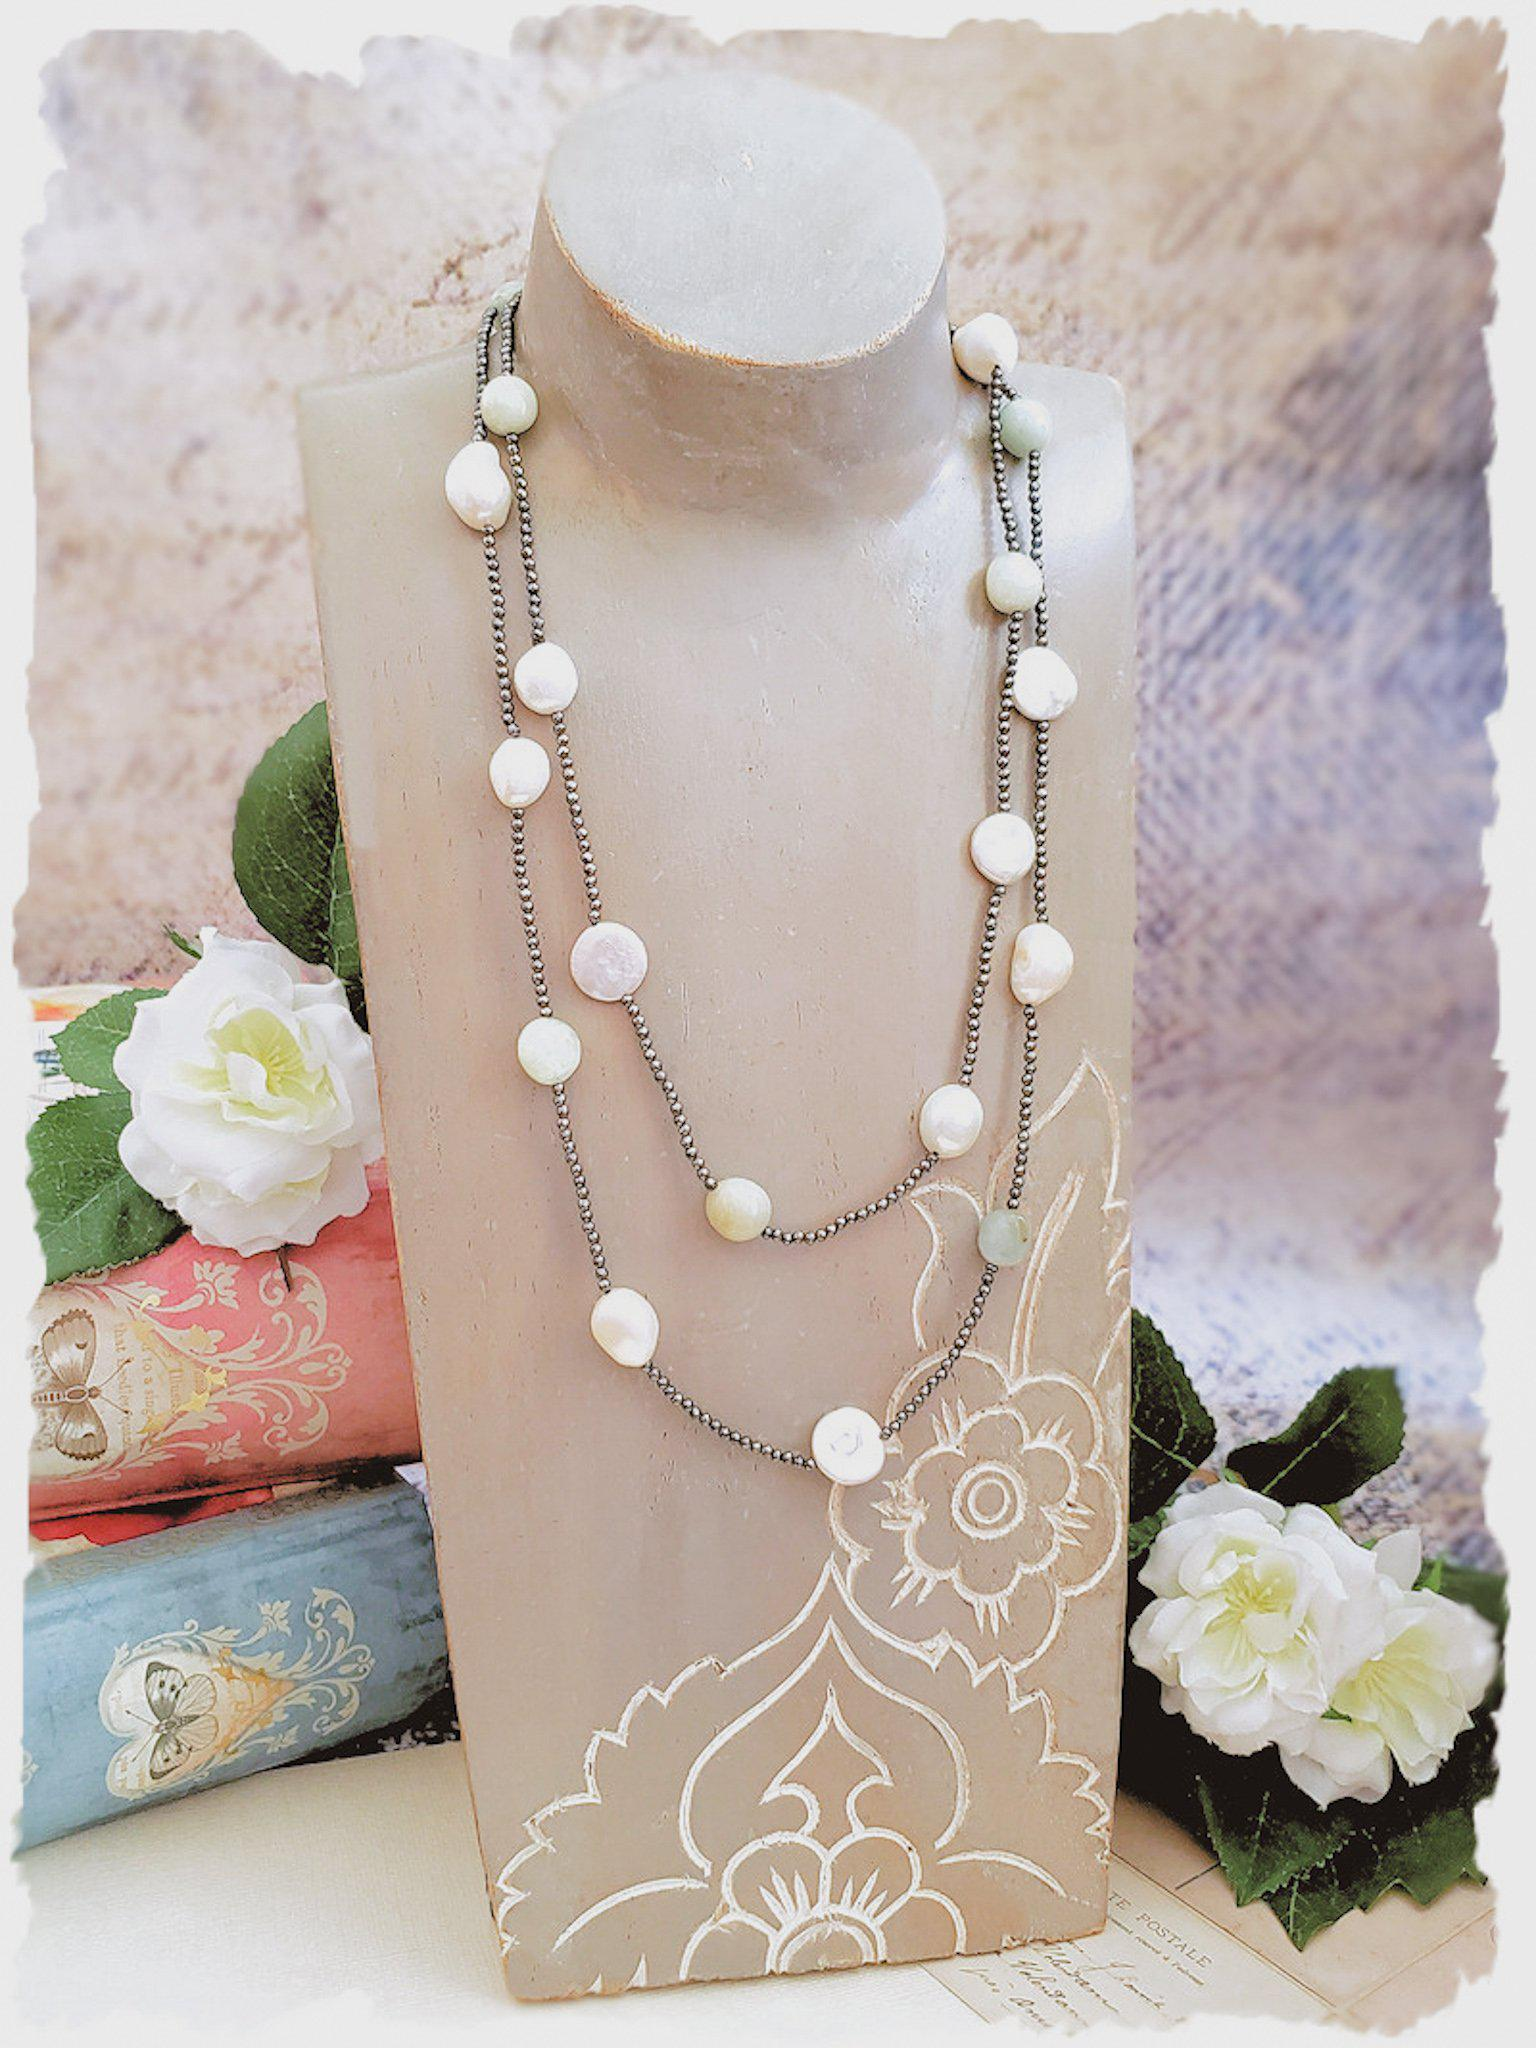 Hematite Necklace with Pearls and Amazonite - Summer Indigo